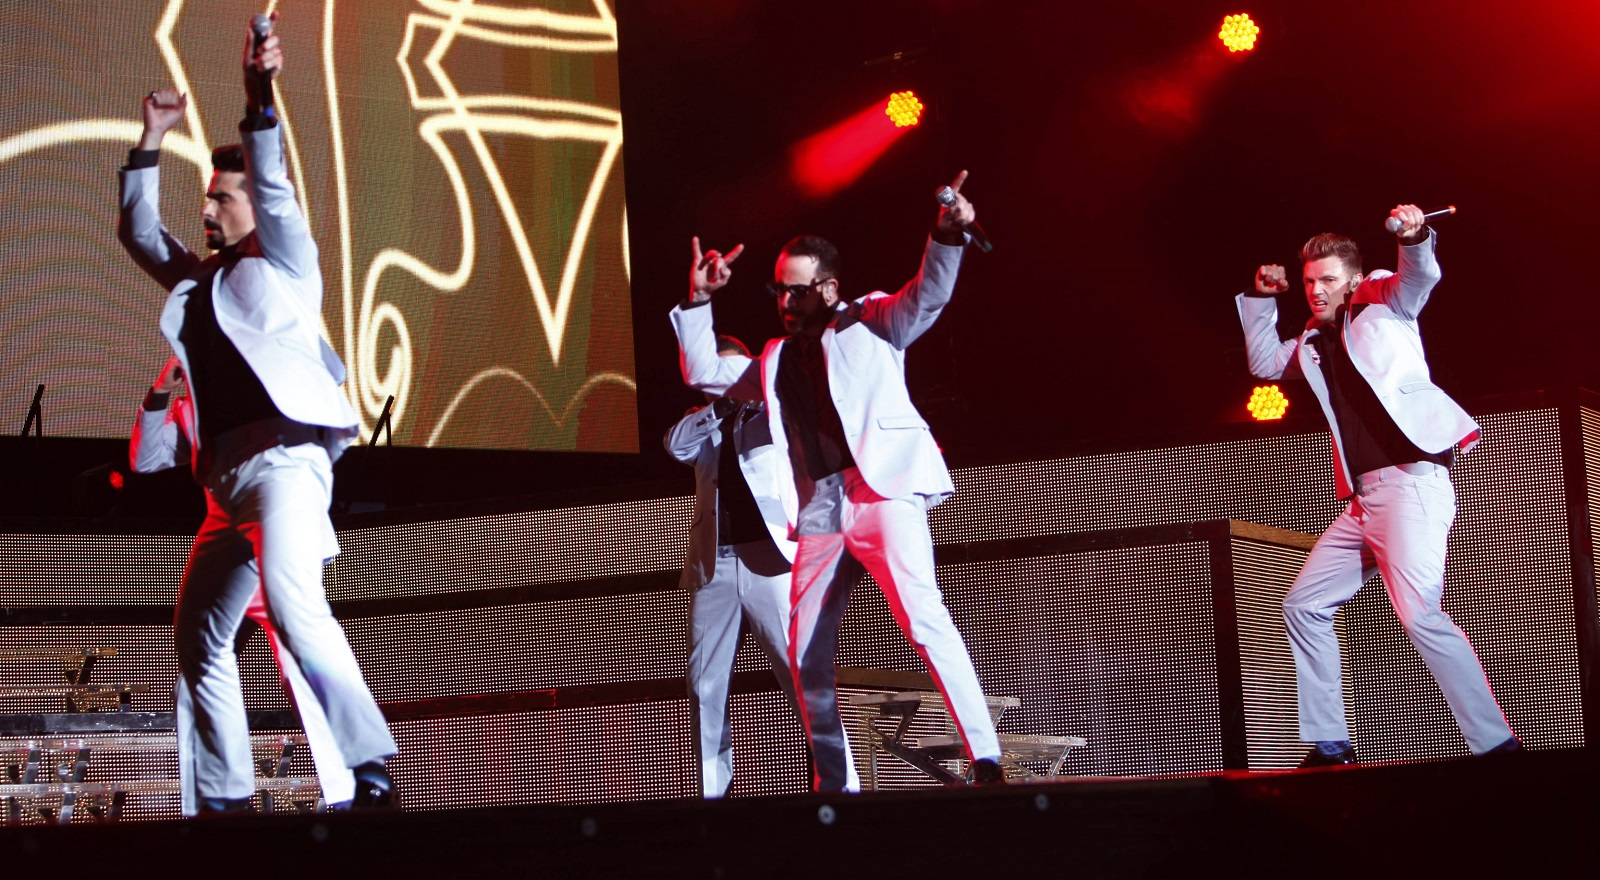 Backstreet Boys, performing above at Darien Lake Performing Arts Center in 2014, will be the focus of a documentary shown at Regal Transit and Elmwood.  (Sharon Cantillon/Buffalo News)